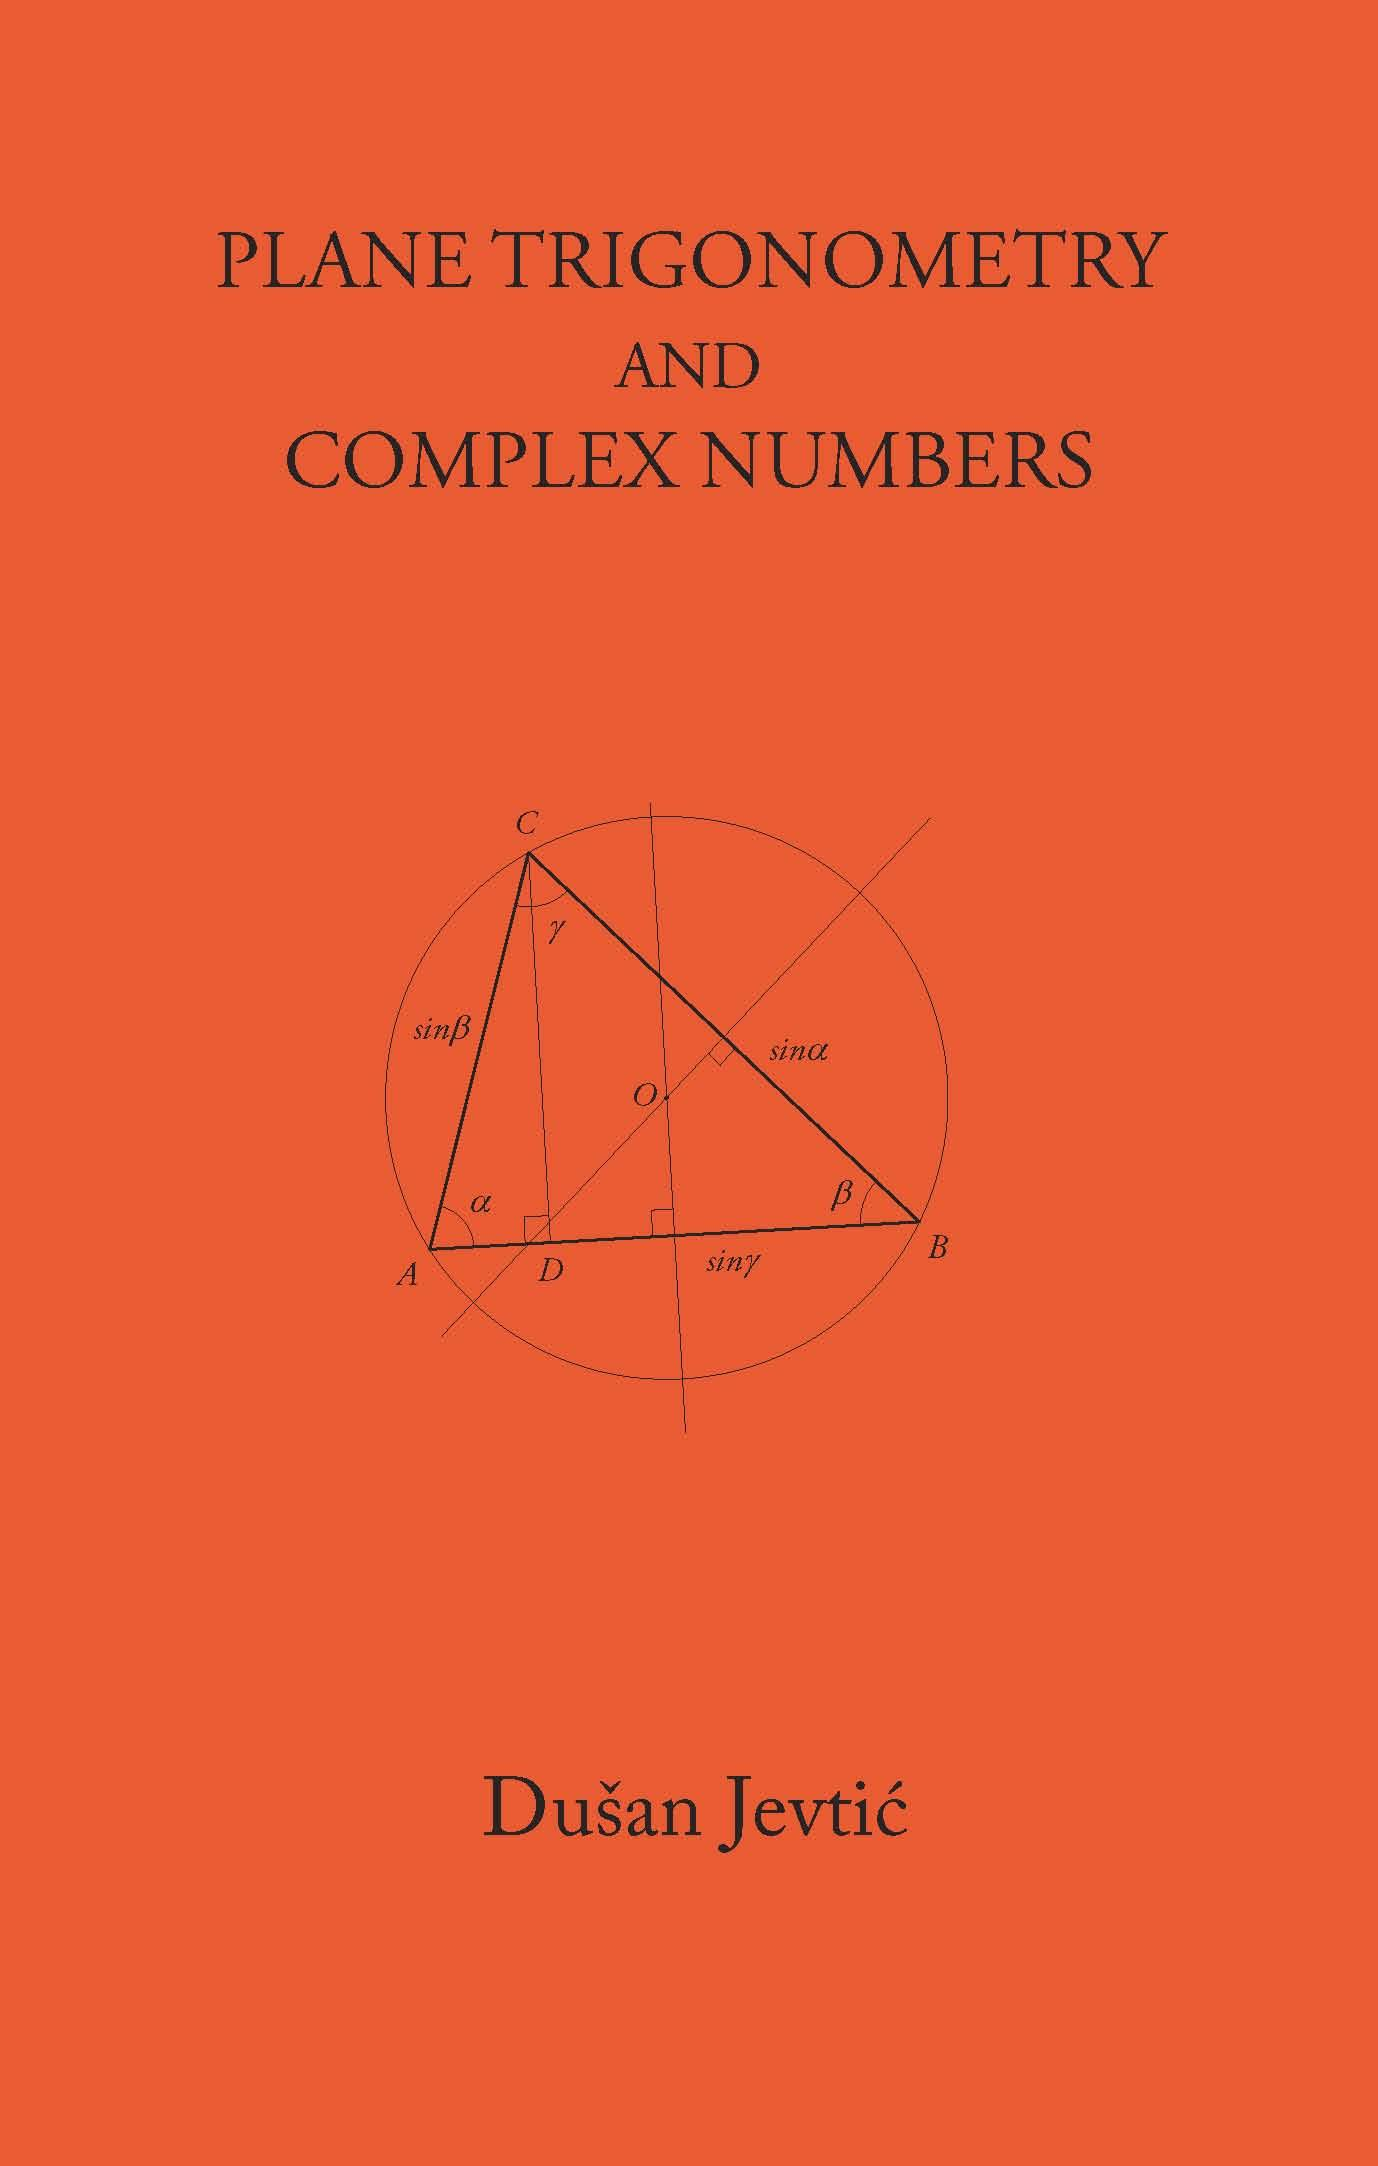 PLANE TRIGONOMETRY AND COMPLEX NUMBERS By: DUSAN JEVTIC